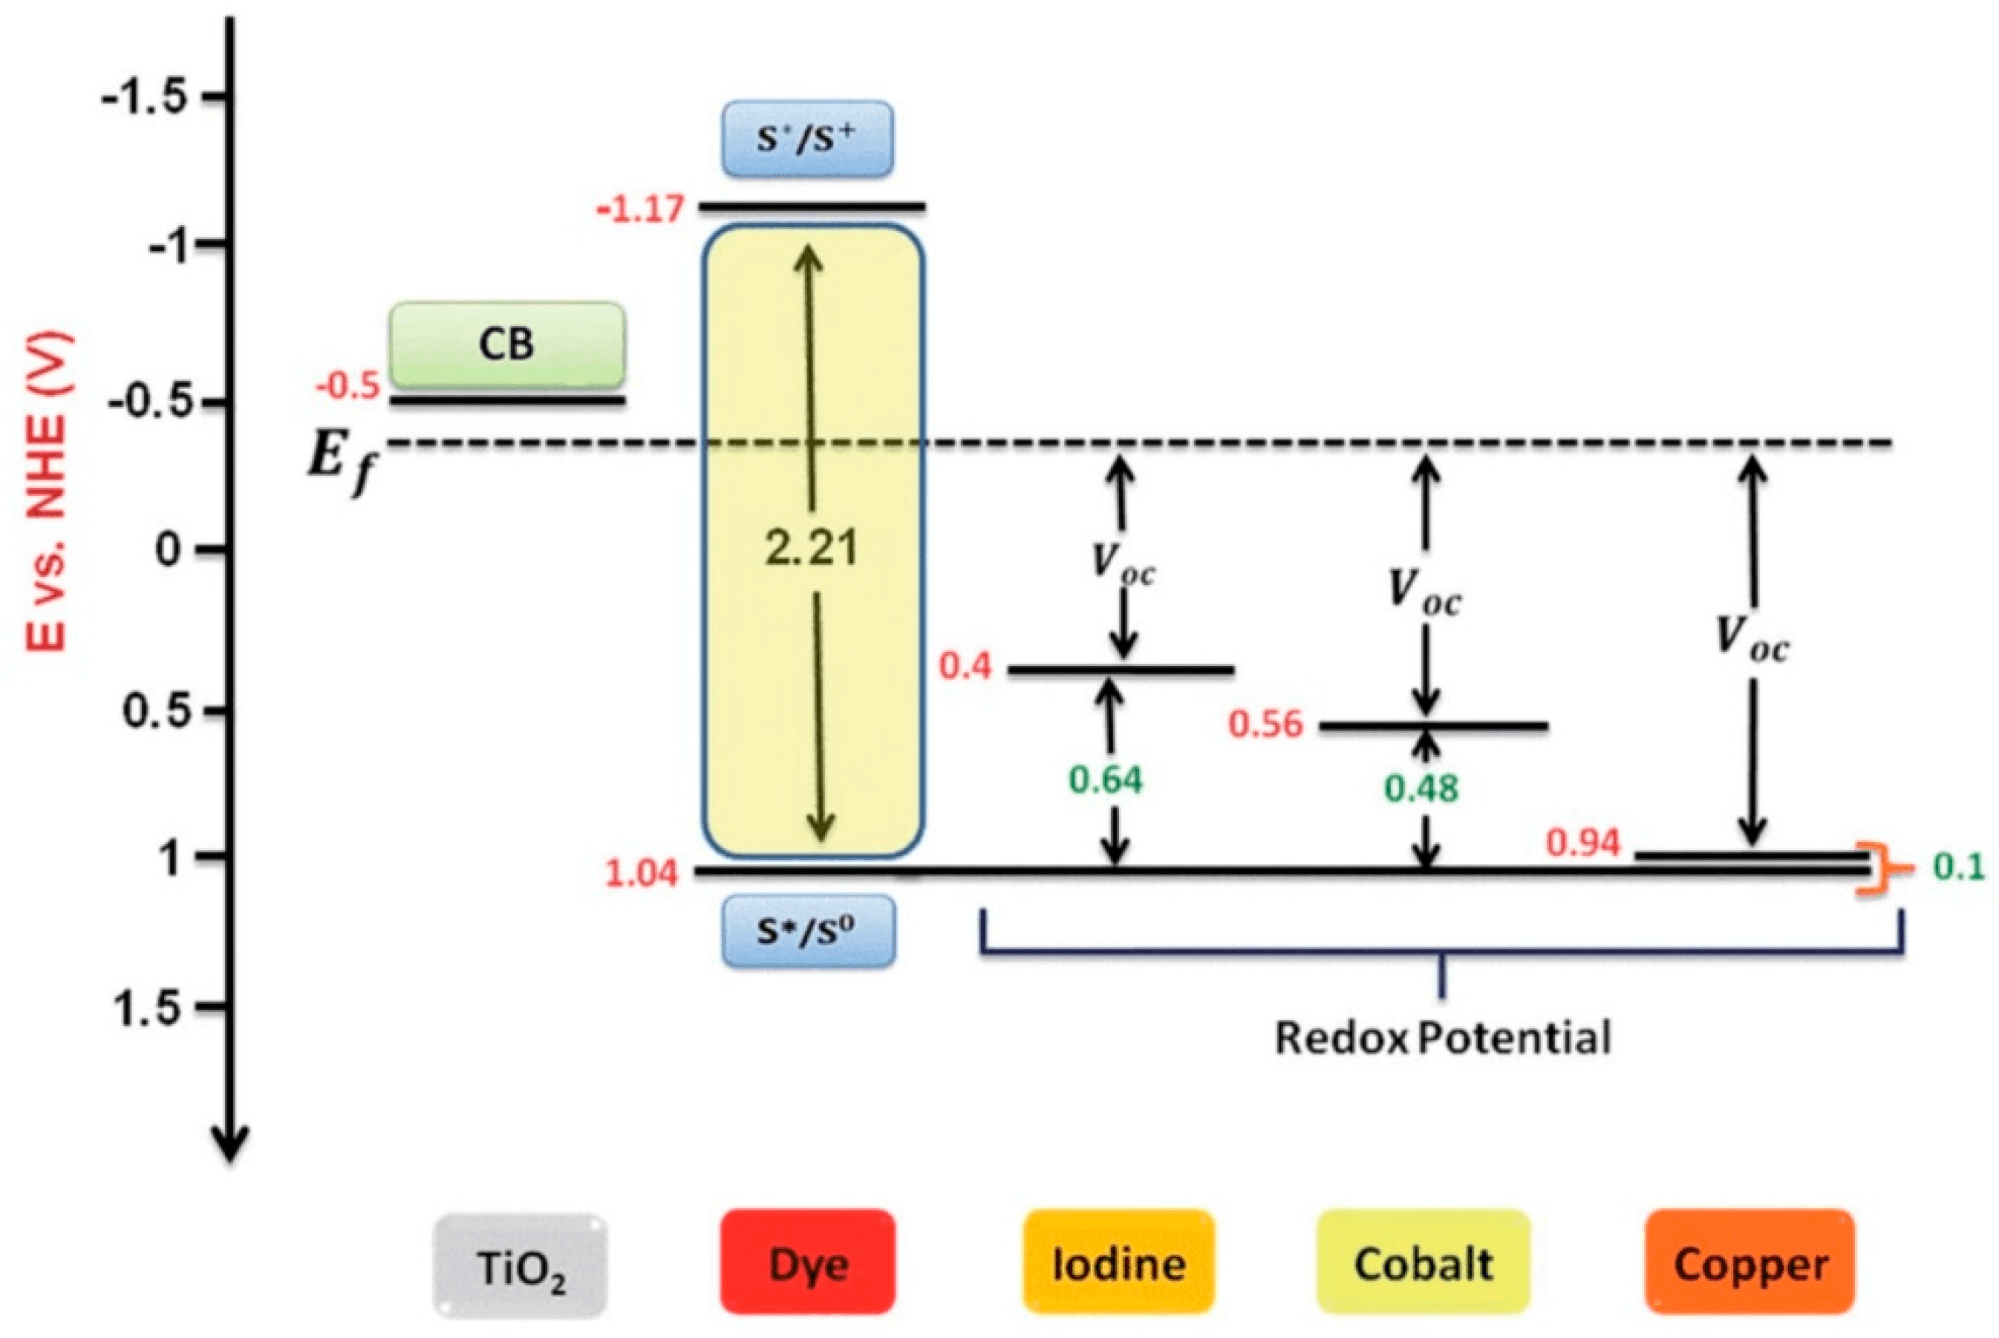 hight resolution of materials free full text progress on electrolytes development in schematic energy diagram for dyesensitized solar cell a cobalt